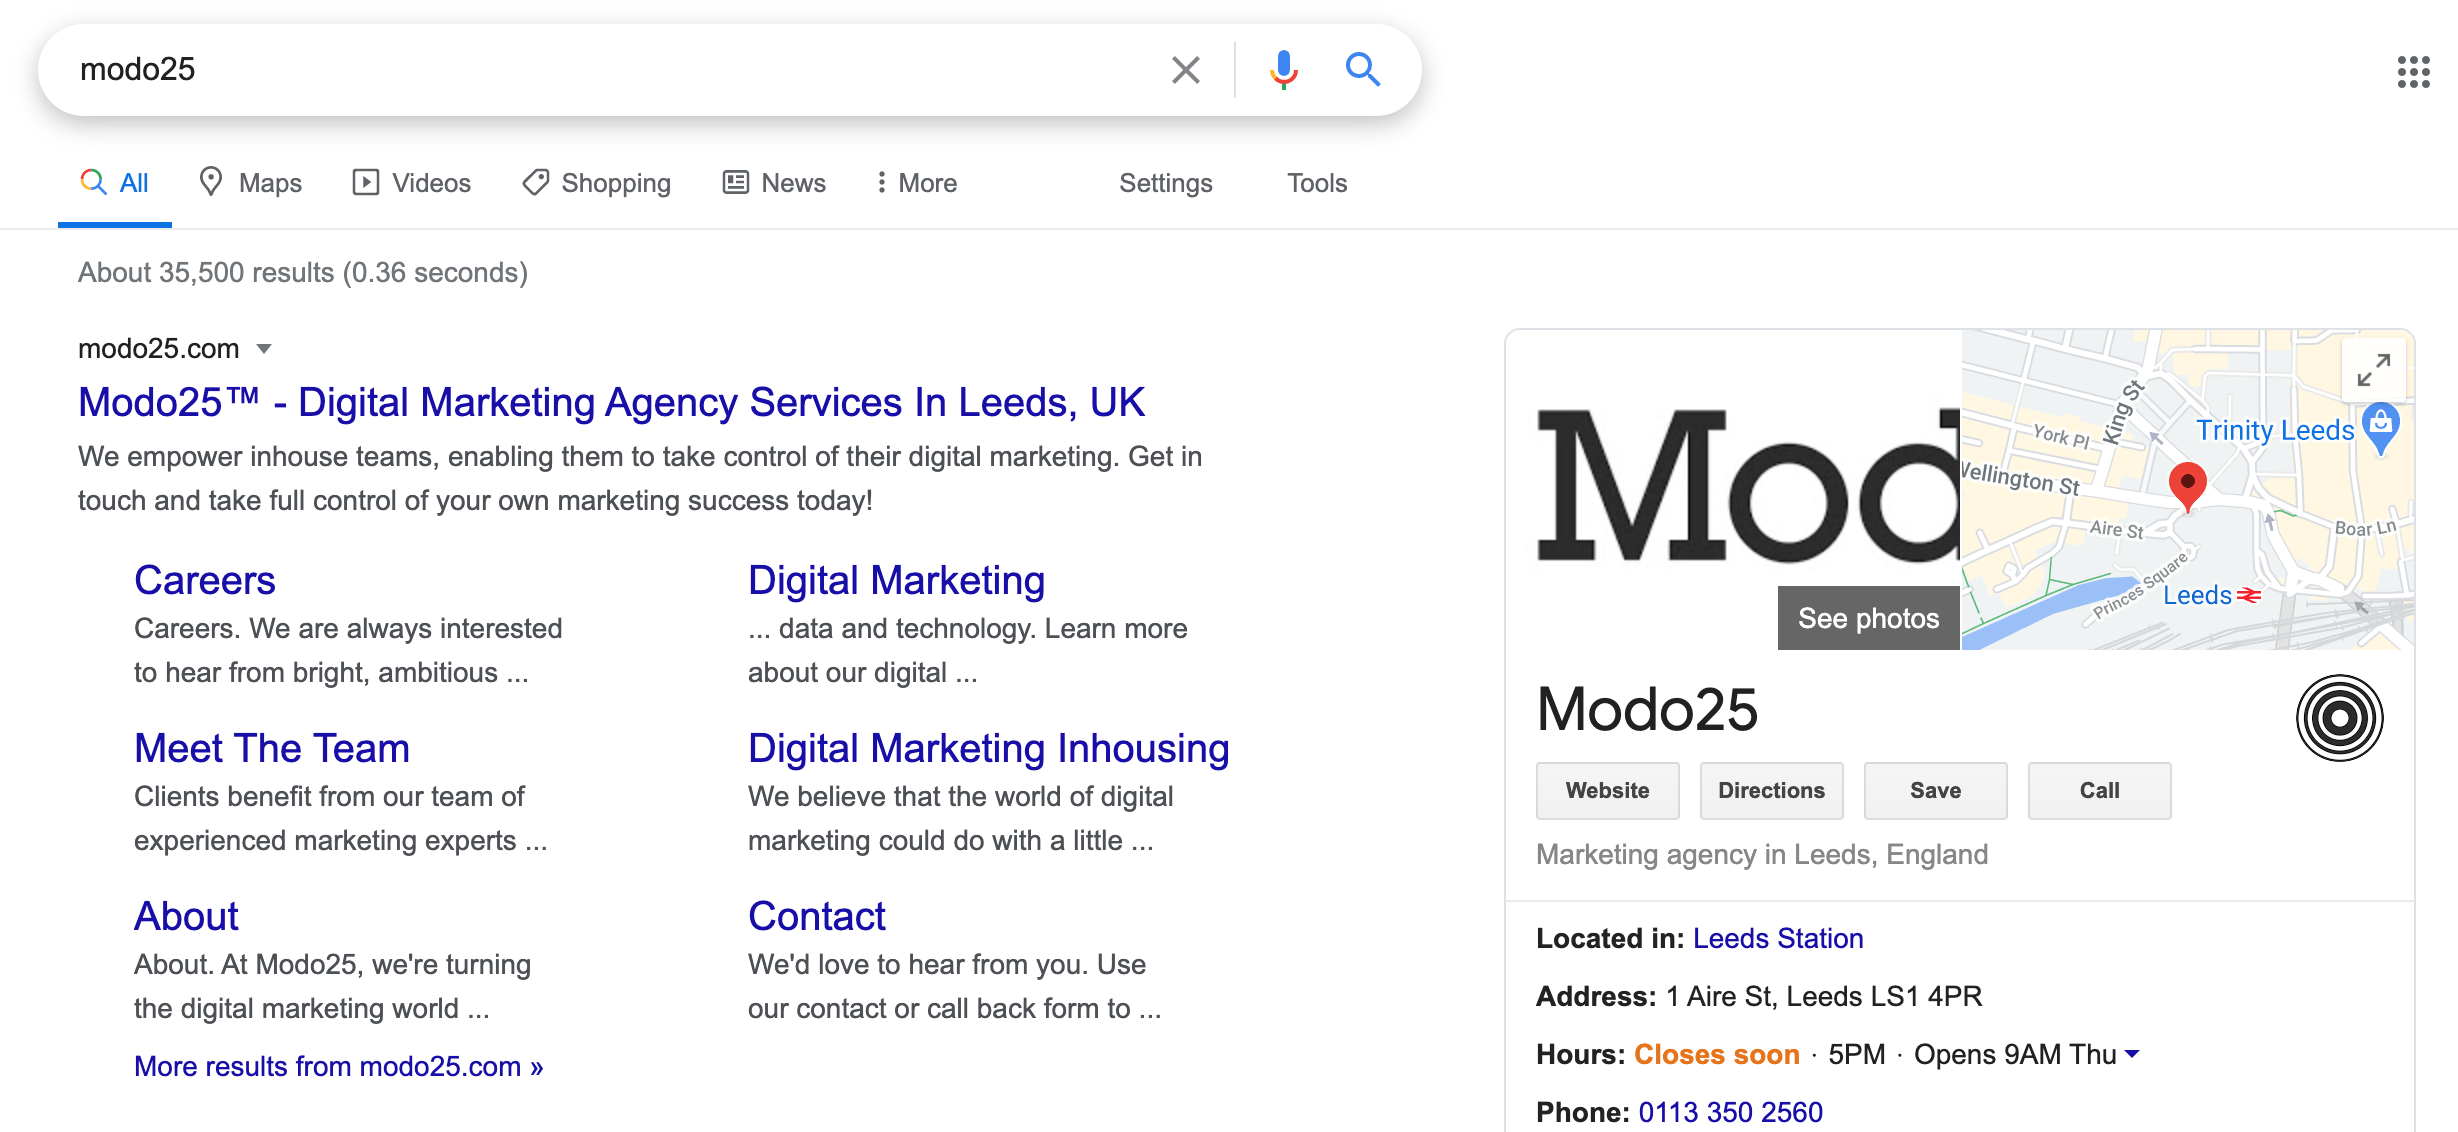 Modo25 navigational search intent